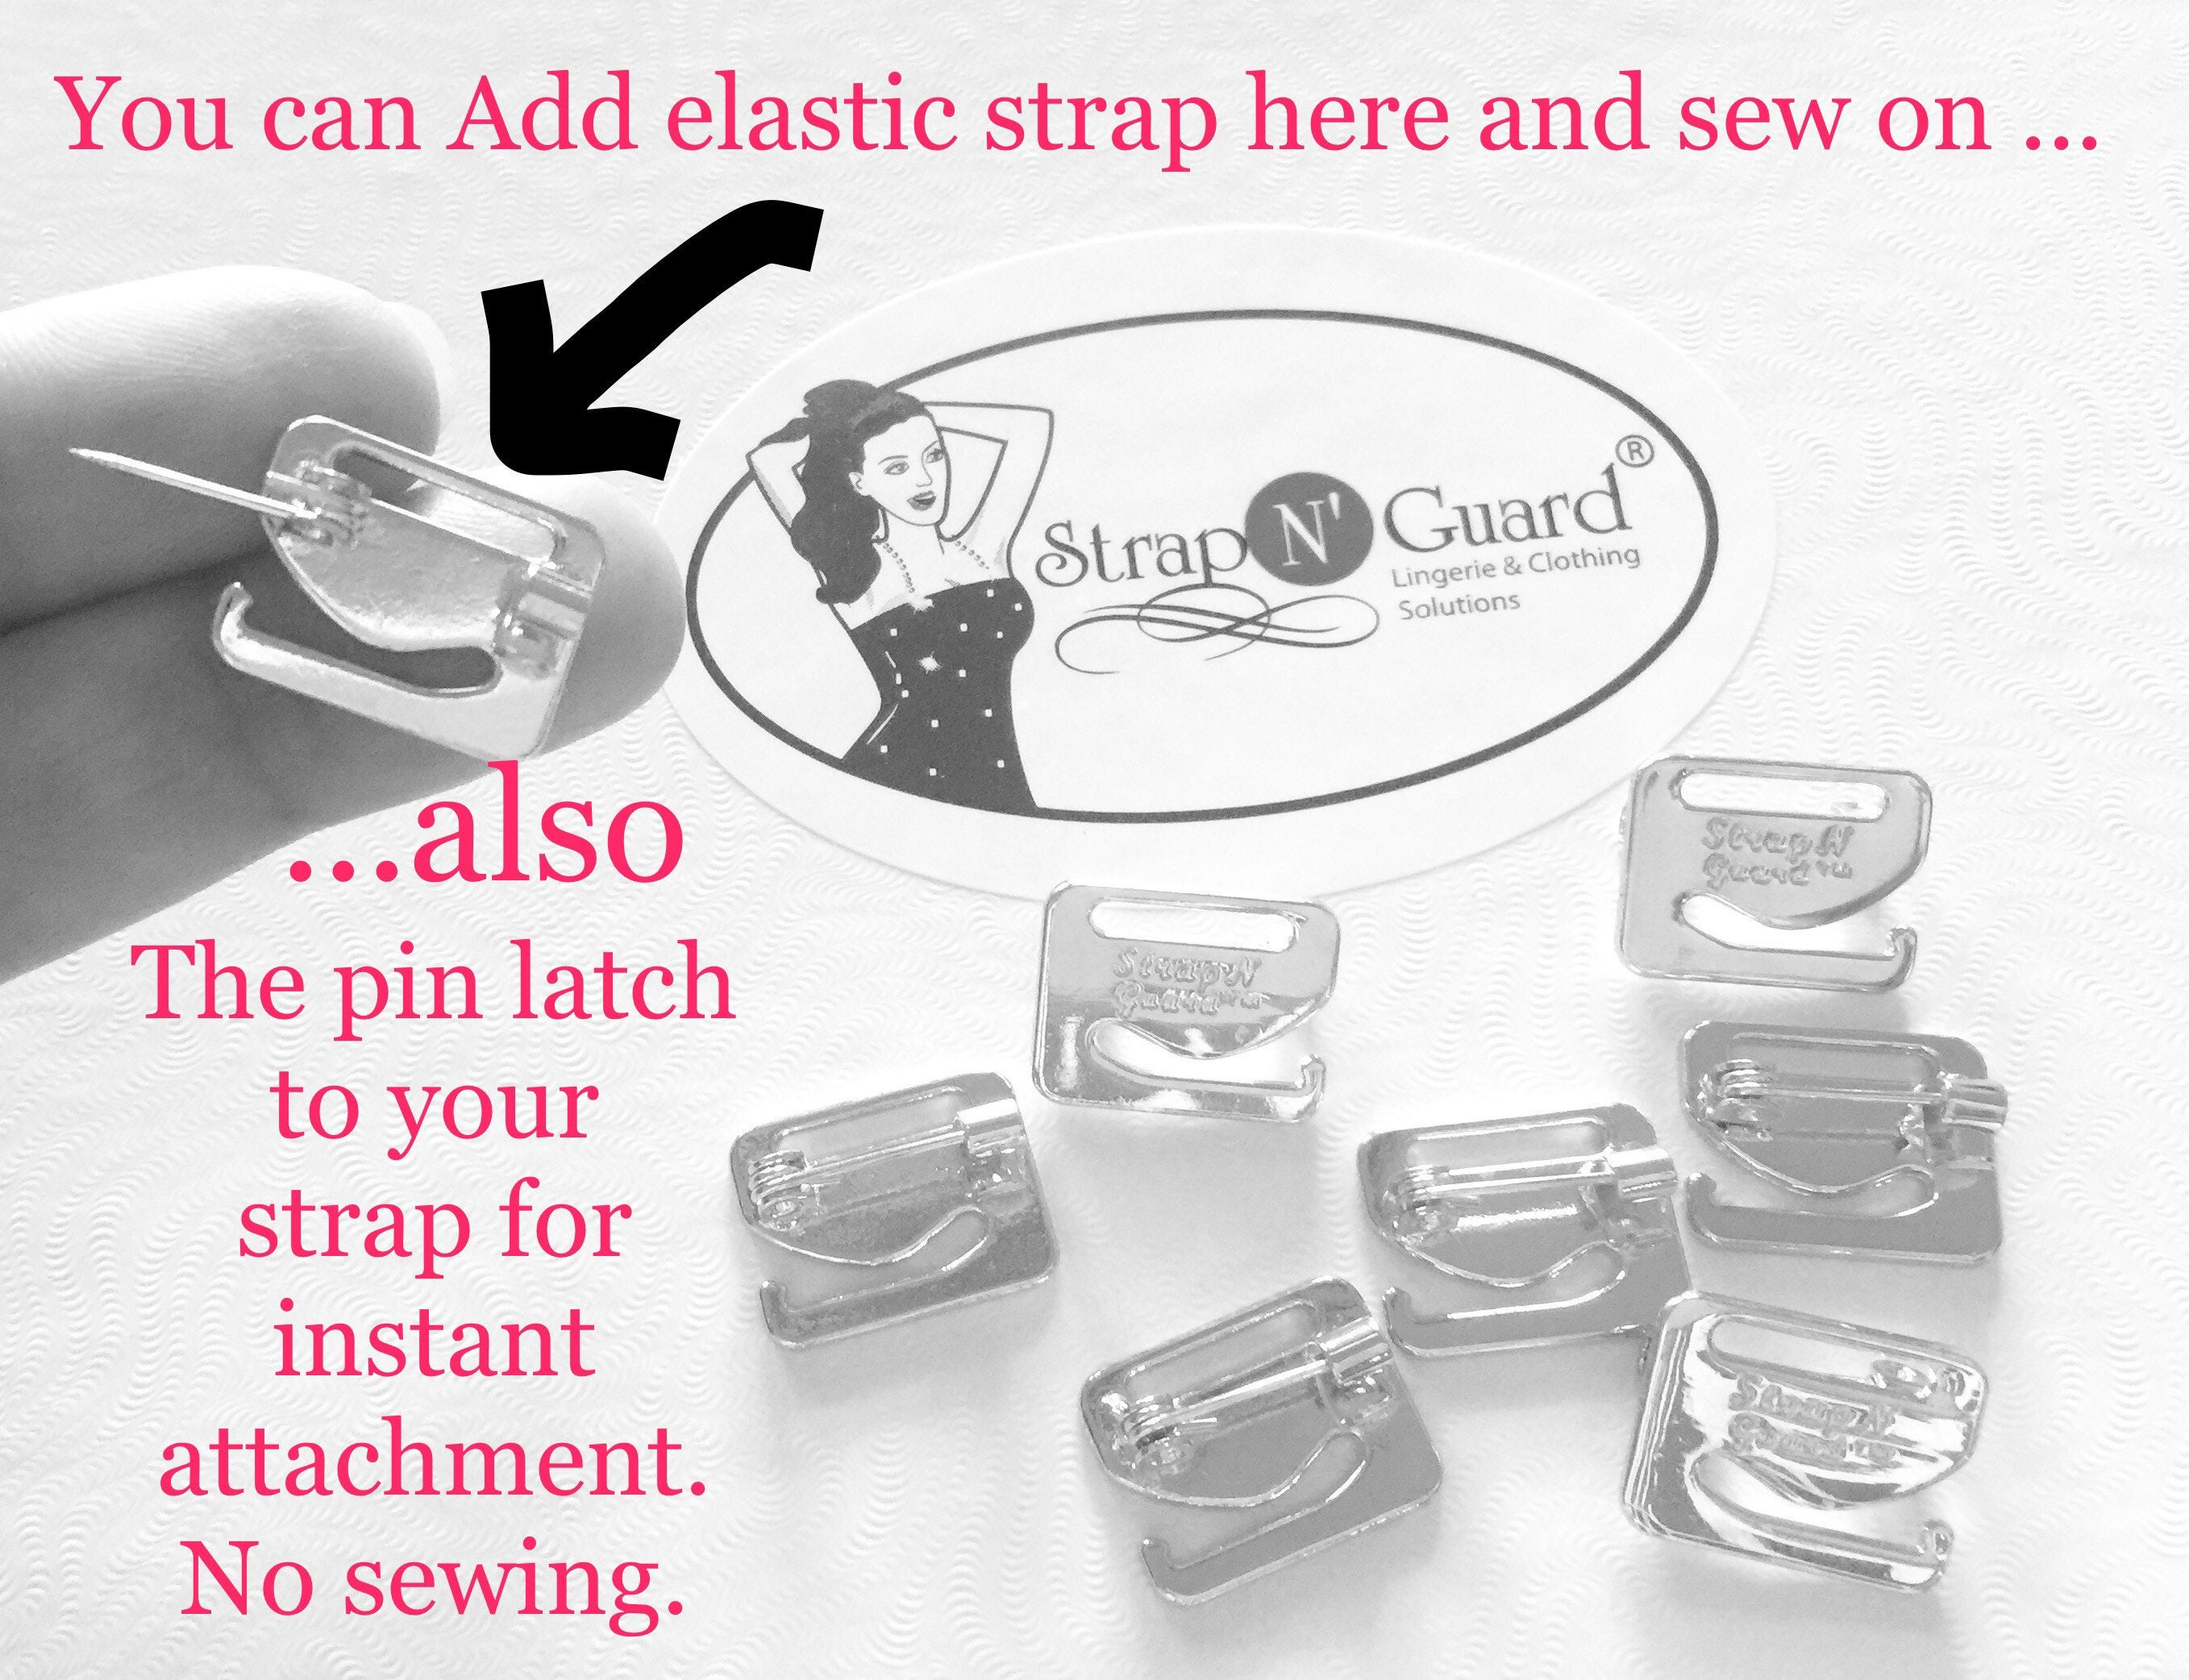 bra hook suppliers Beautiful bra model with fixed fabric straps the cup consists of three well-shaped pieces giving roundness and a good volume for the cup cup pieces enable you to make very creative cup cover fabric choices.